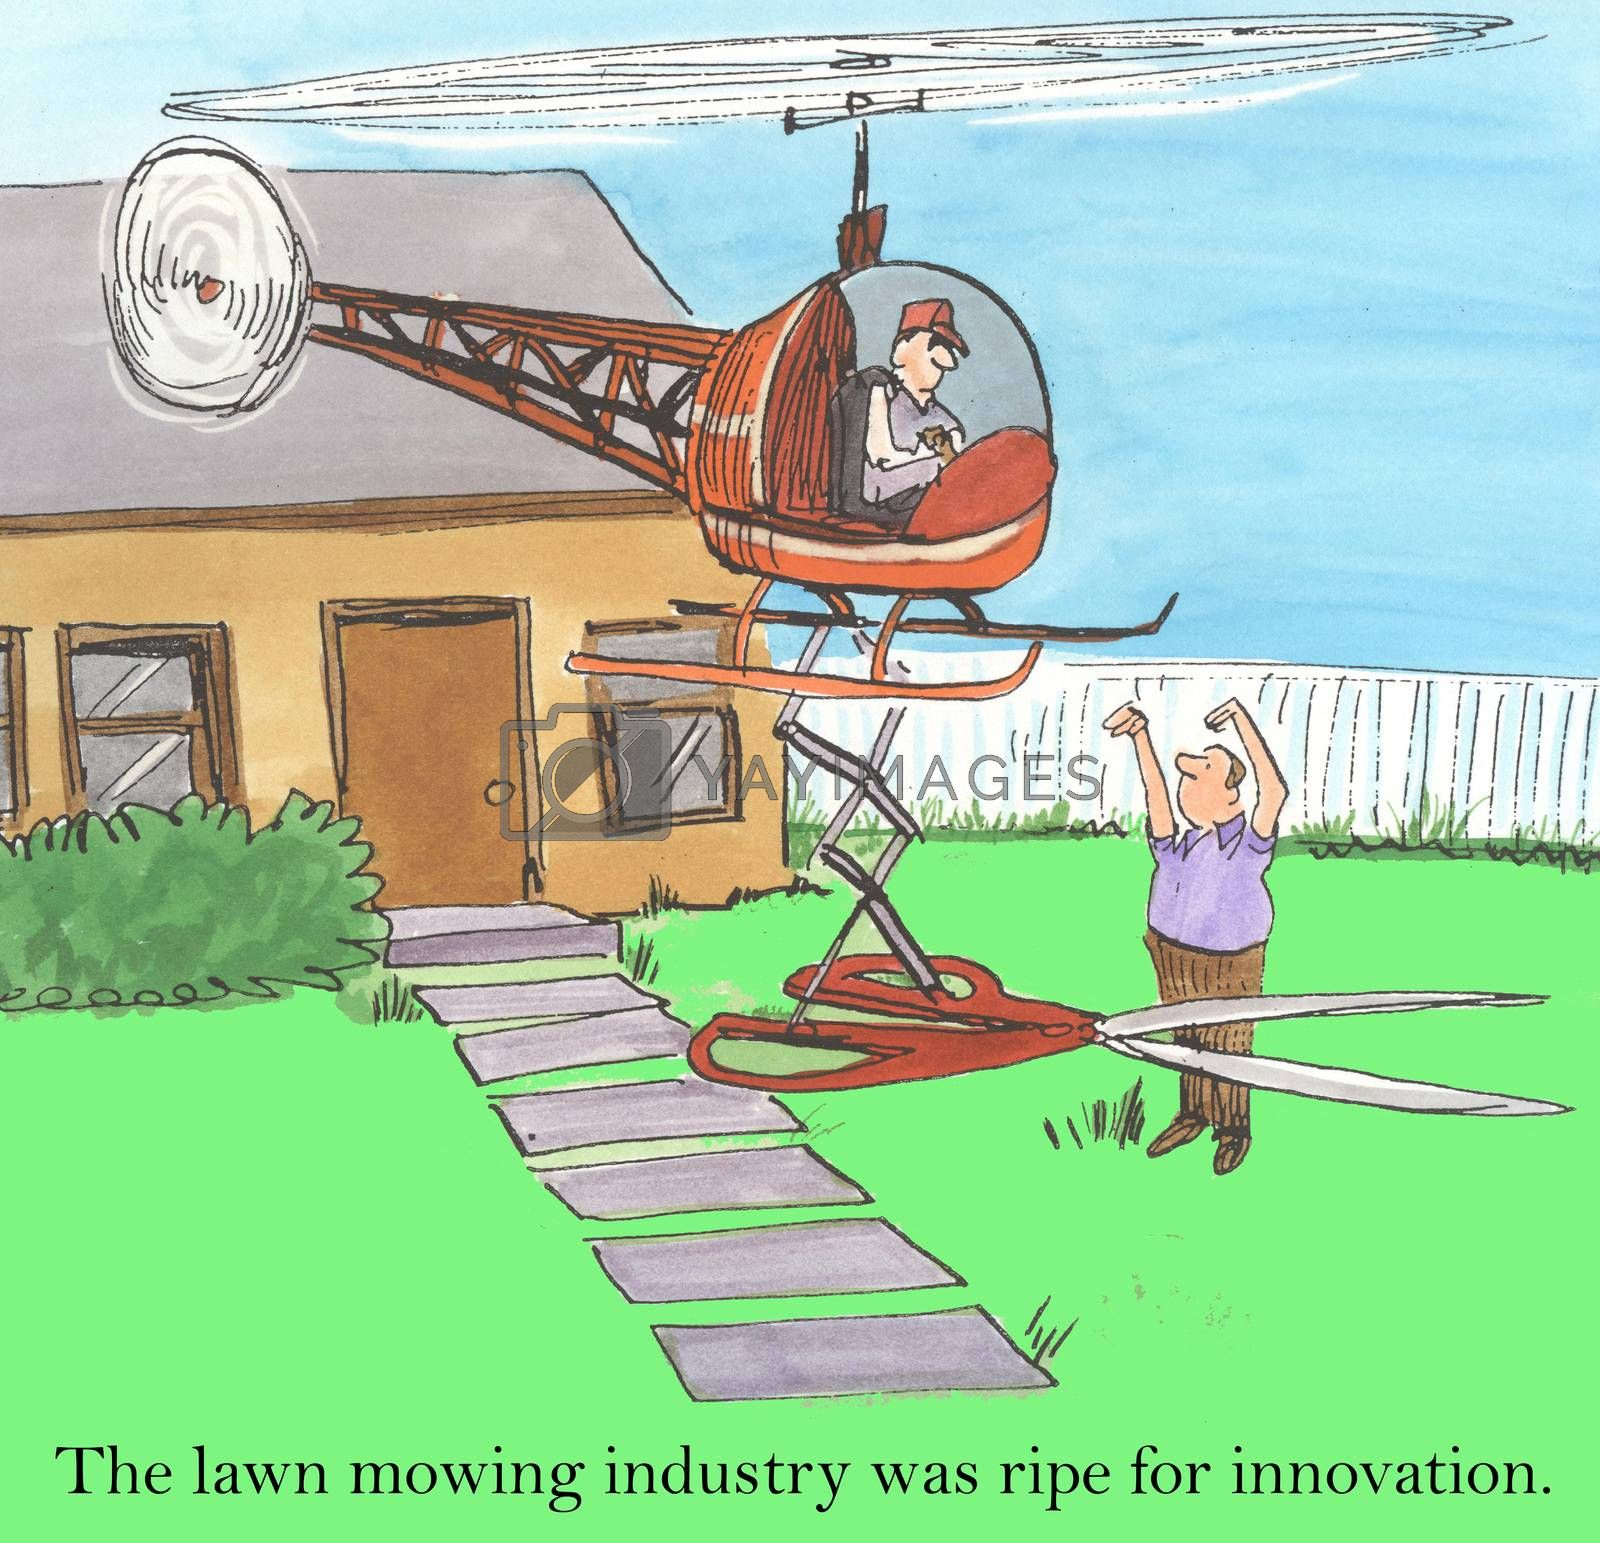 The lawn mowing industry was ripe for innovation.